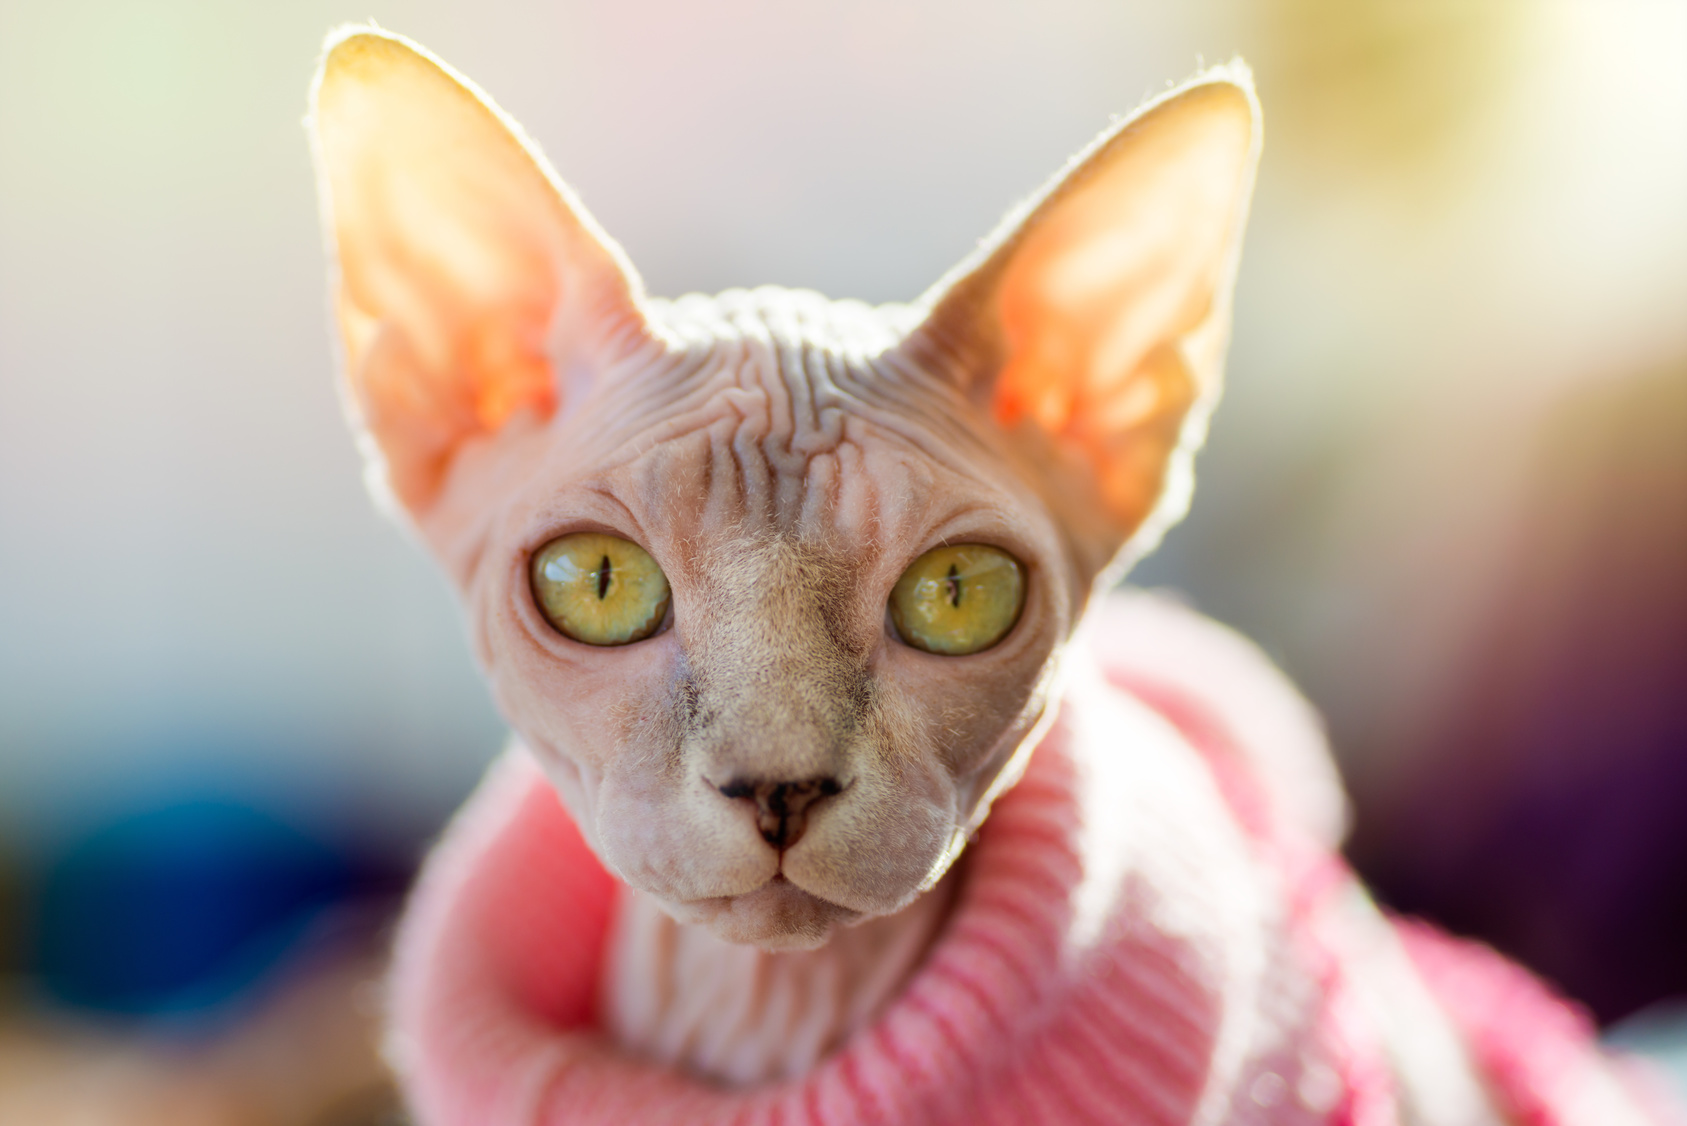 Animals: Sphynx cat wearing pink pullover, sun shining through the ears, sunlight effect added, close-up shot, blurred background